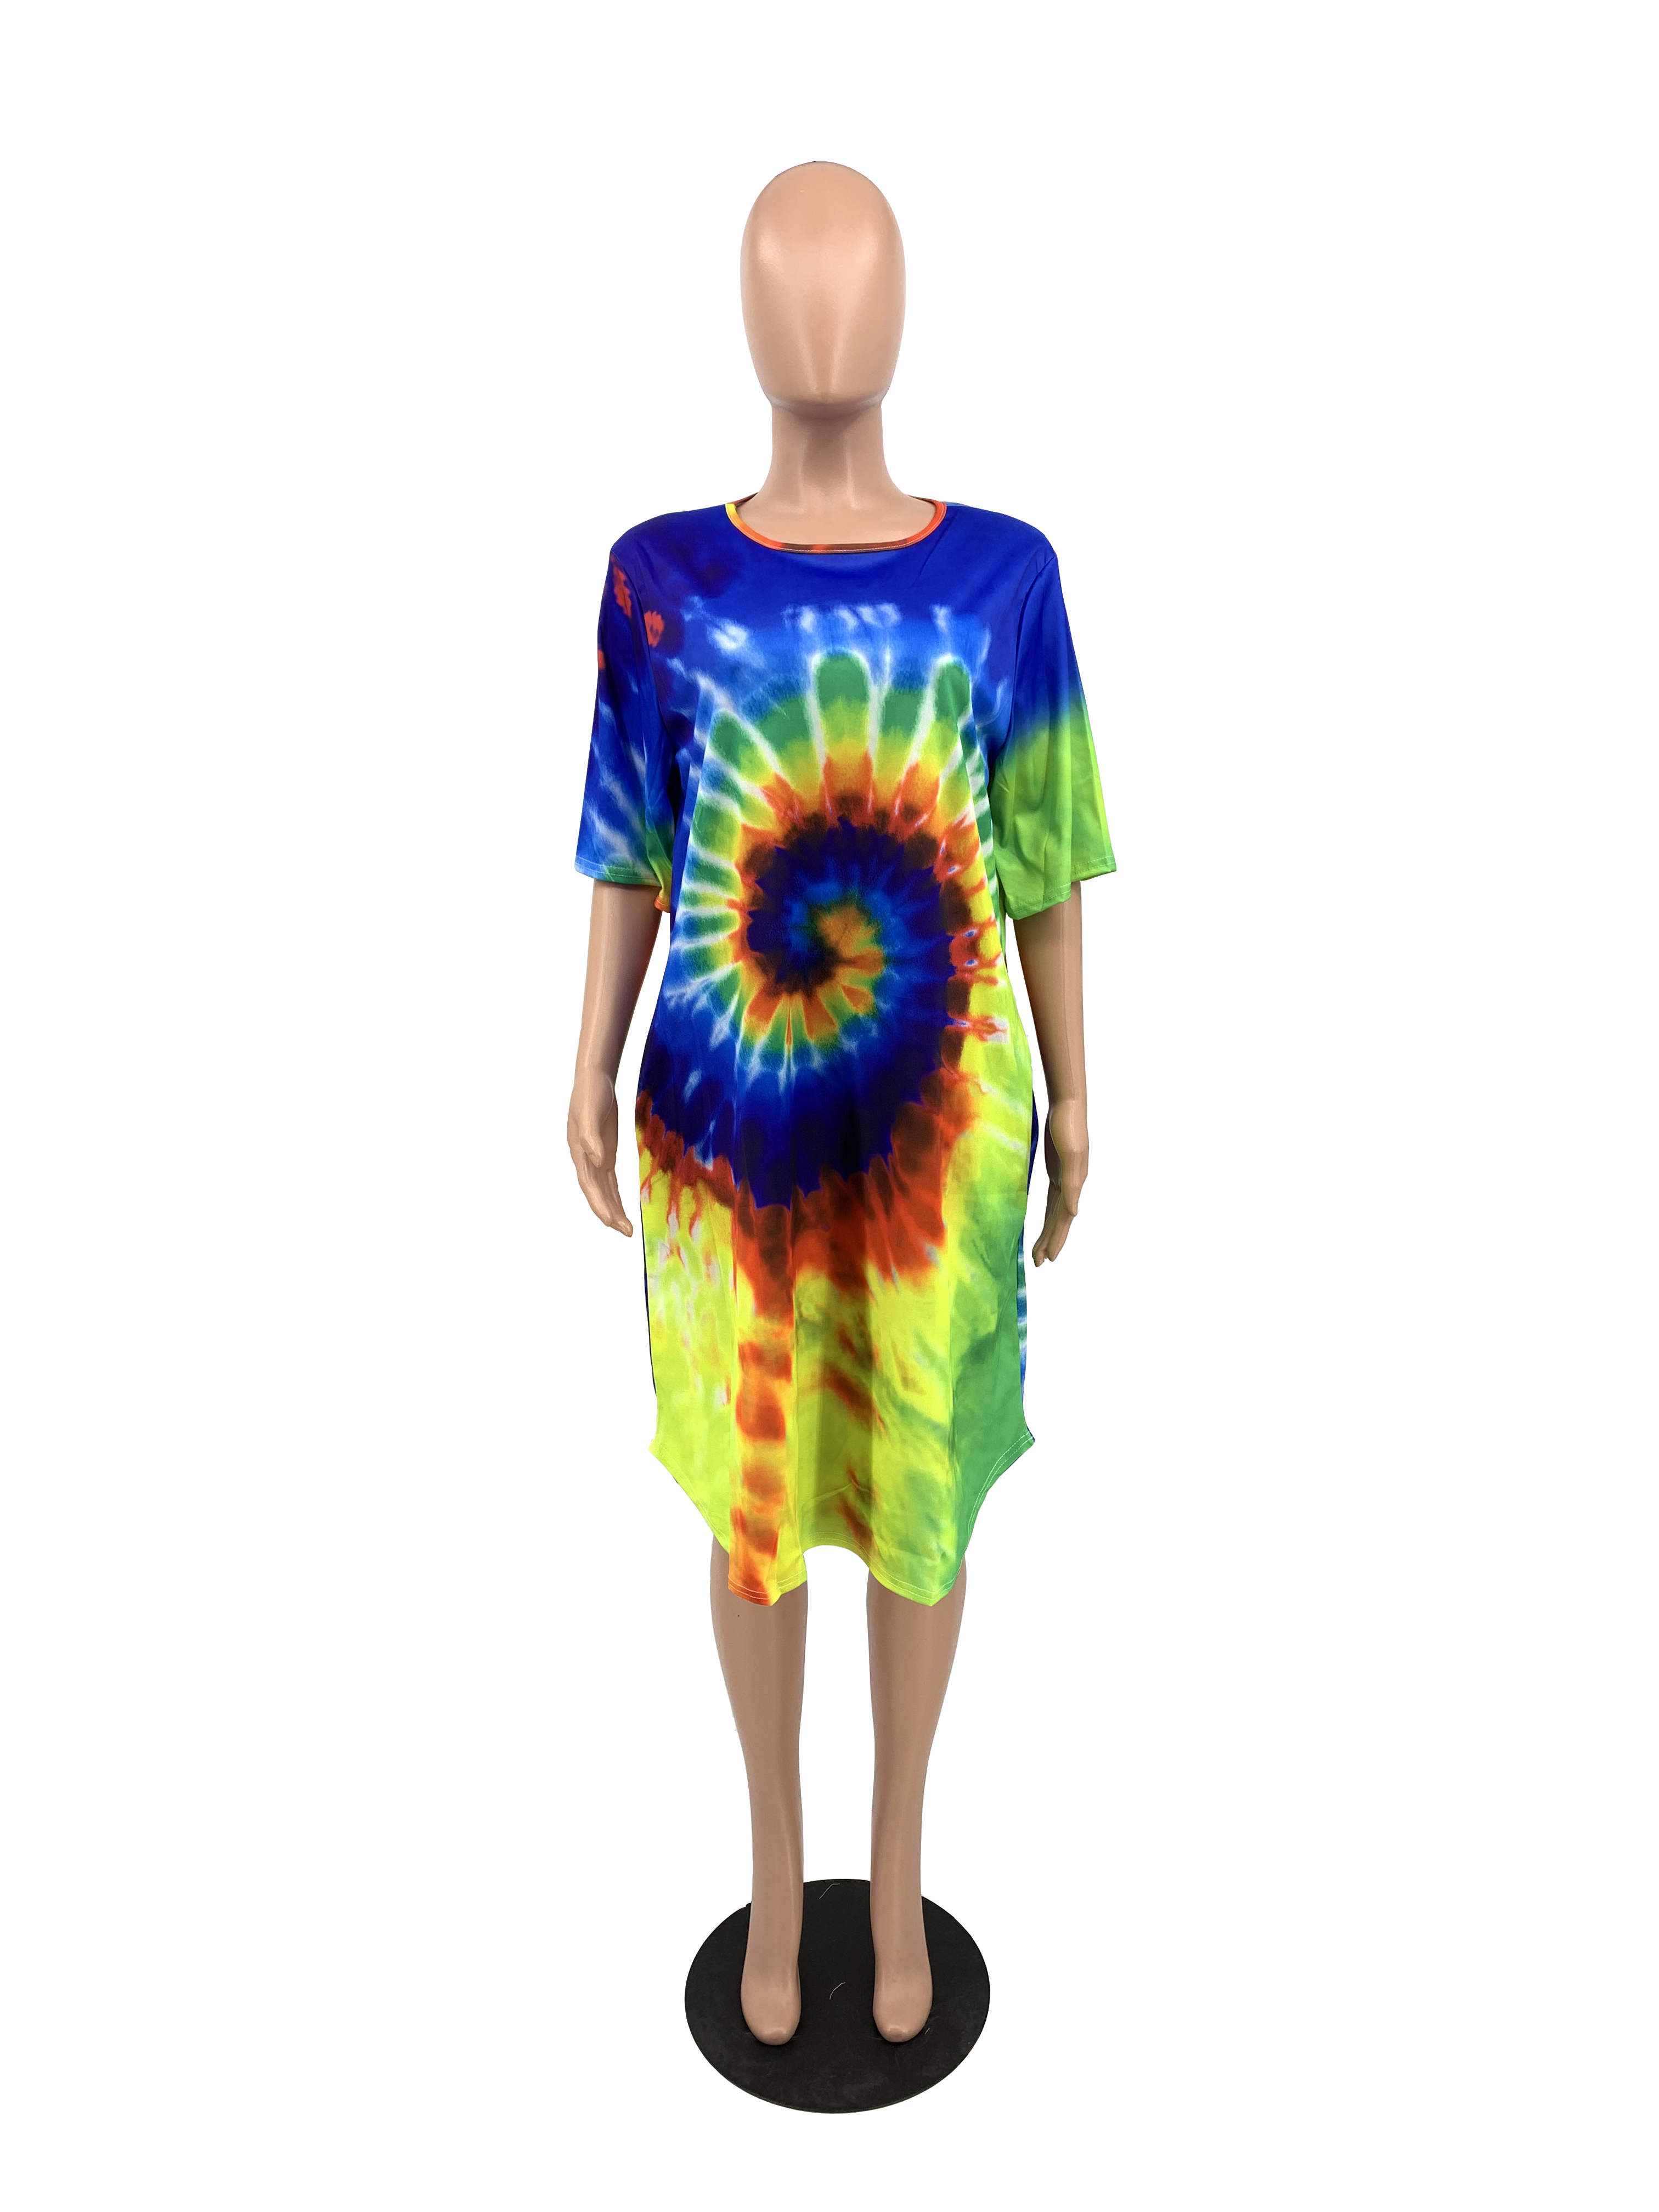 H1203 Plus Size Short sleeve Round collar tie dye printing Casual Women T shirt Dress